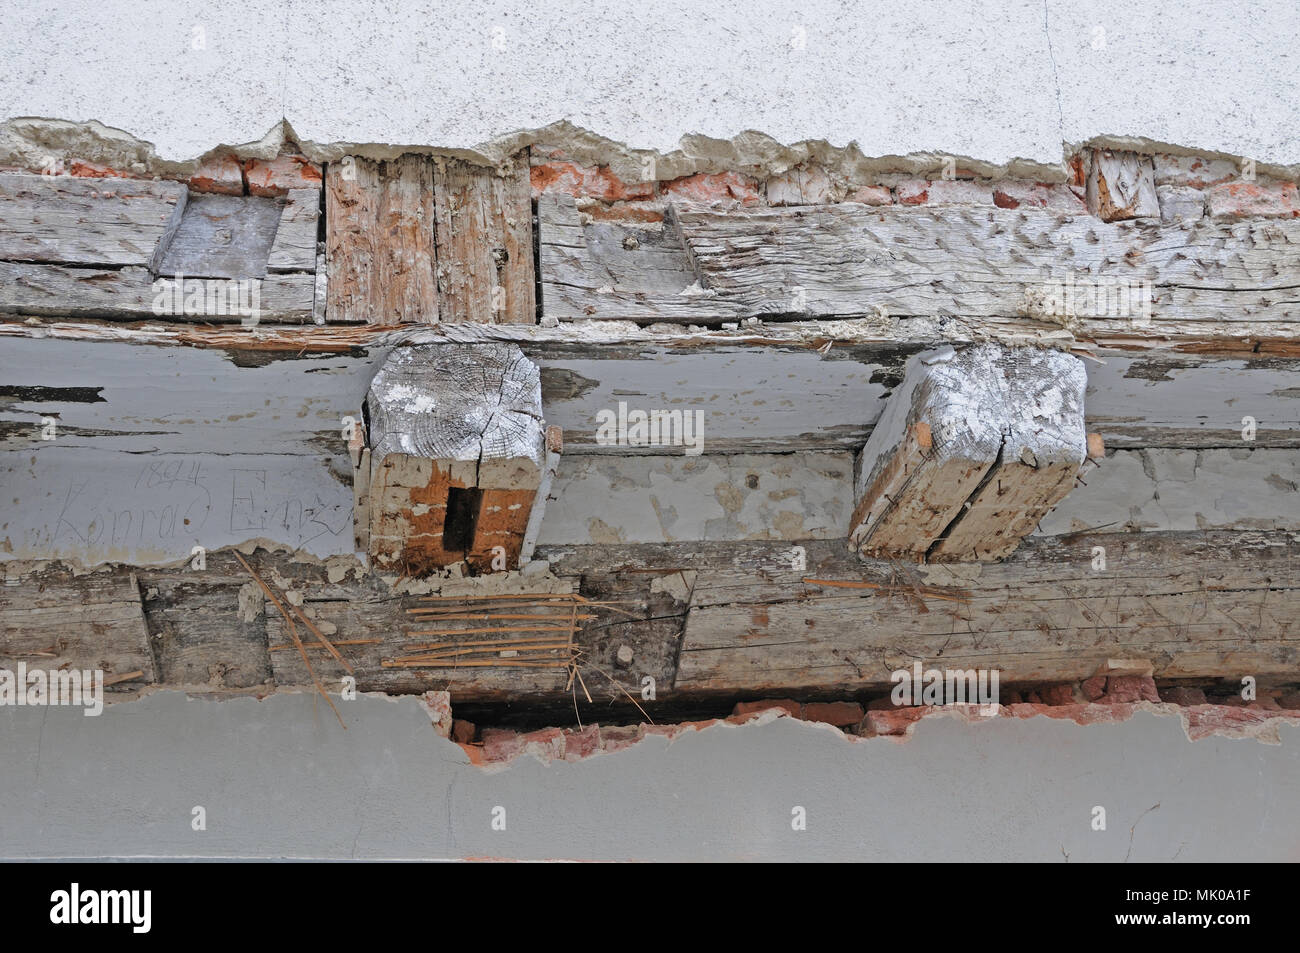 timber work at old building - Stock Image